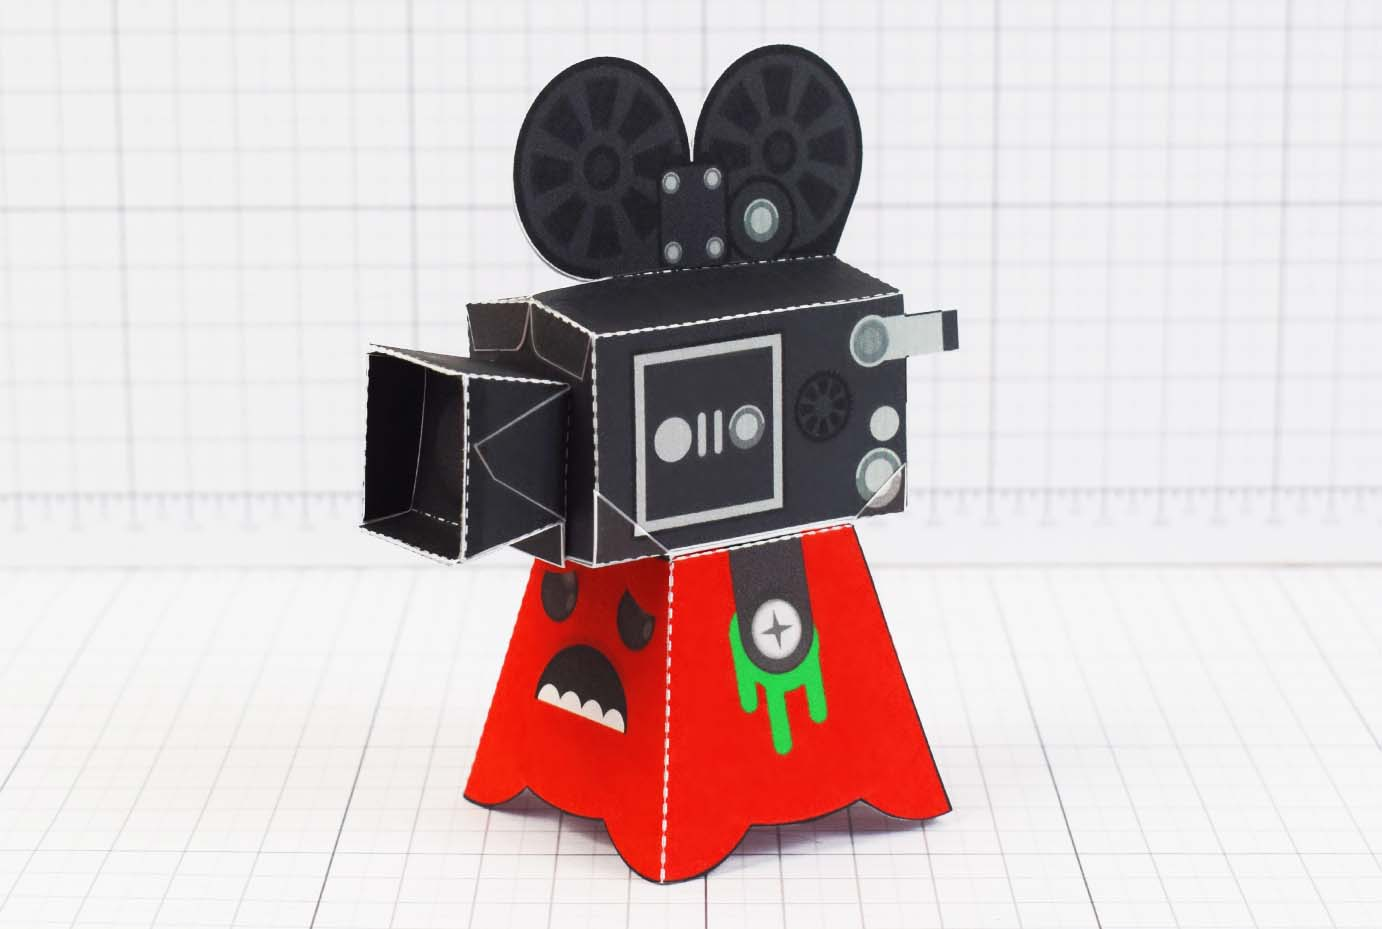 PTI - Media Monsters Camera Paper Toy Image - Main